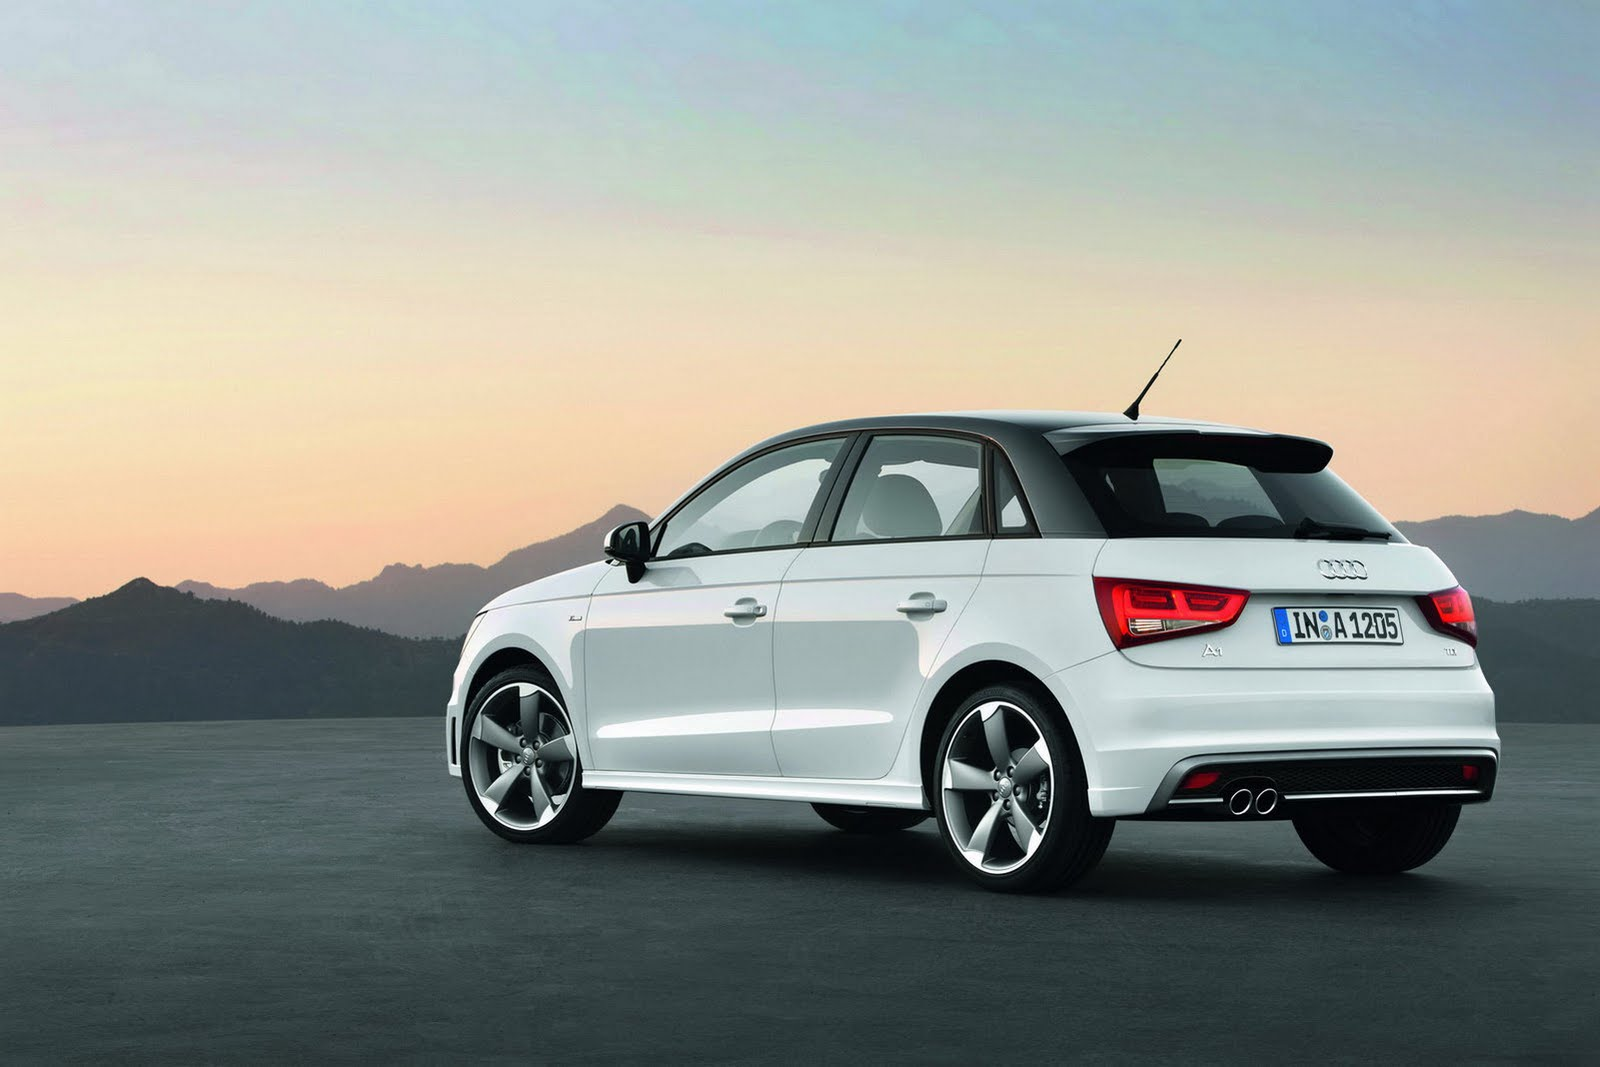 nuova audi a1 sportback immagini ufficiali e dati tecnici italiantestdriver. Black Bedroom Furniture Sets. Home Design Ideas